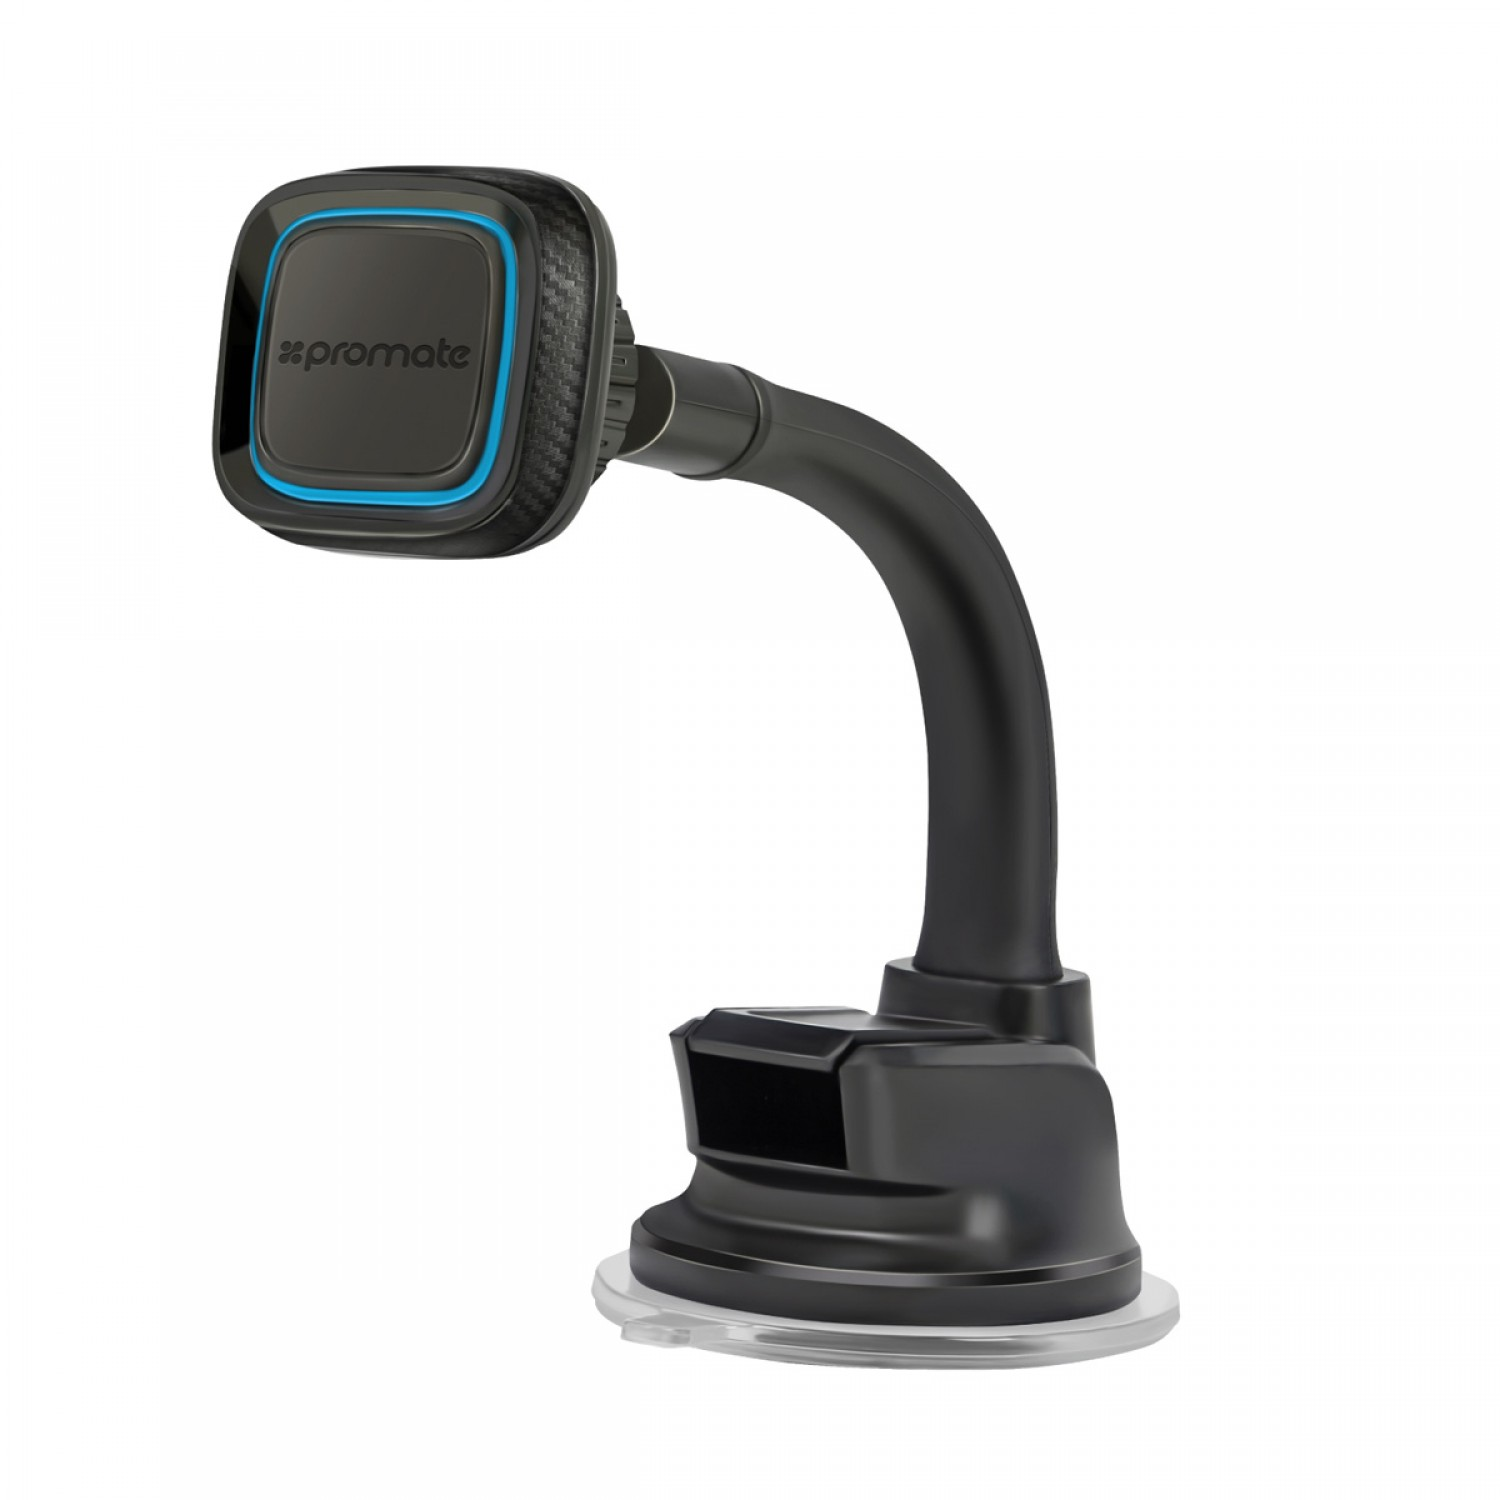 Promate Dashboard Mount, Universal Windshield or Dashboard Magnetic Car Mount Holder with 360 Degree Rotation, Flexible Gooseneck, Anti-Slip Grip and Secure Holder for iPhone X, Samsung Note 8, MagMount-4 Blue